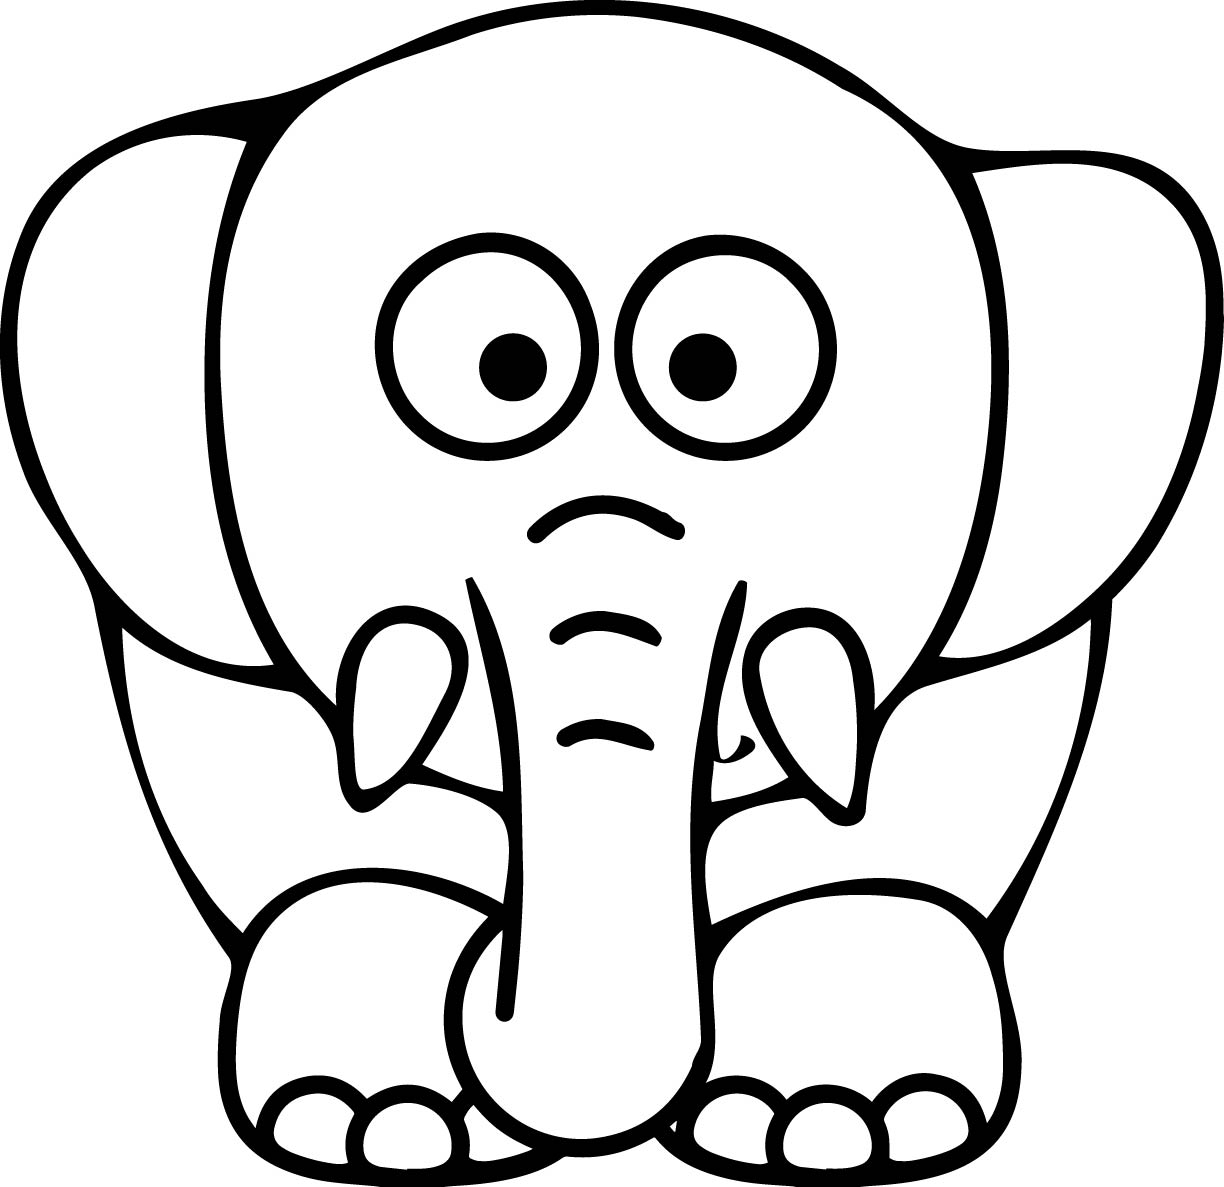 coloring pics of elephant elephant coloring book pages get coloring pages of elephant pics coloring